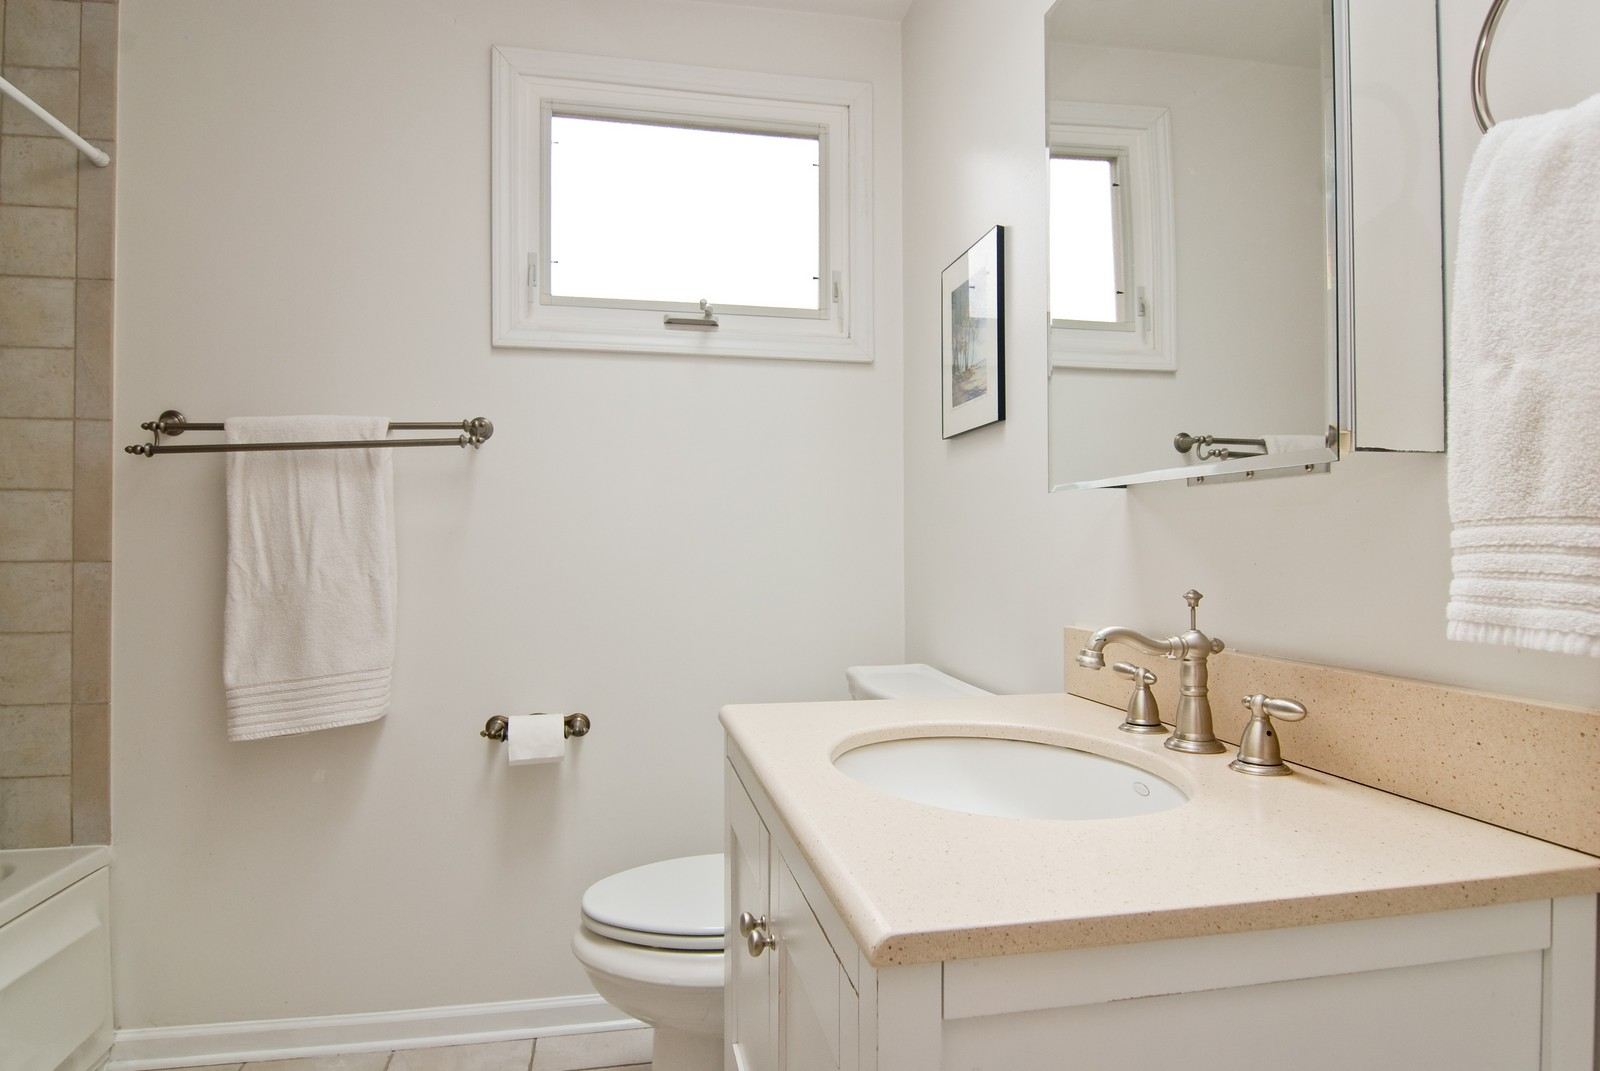 Real Estate Photography - 3436 N Kilbourn, Chicago, IL, 60641 - Bathroom